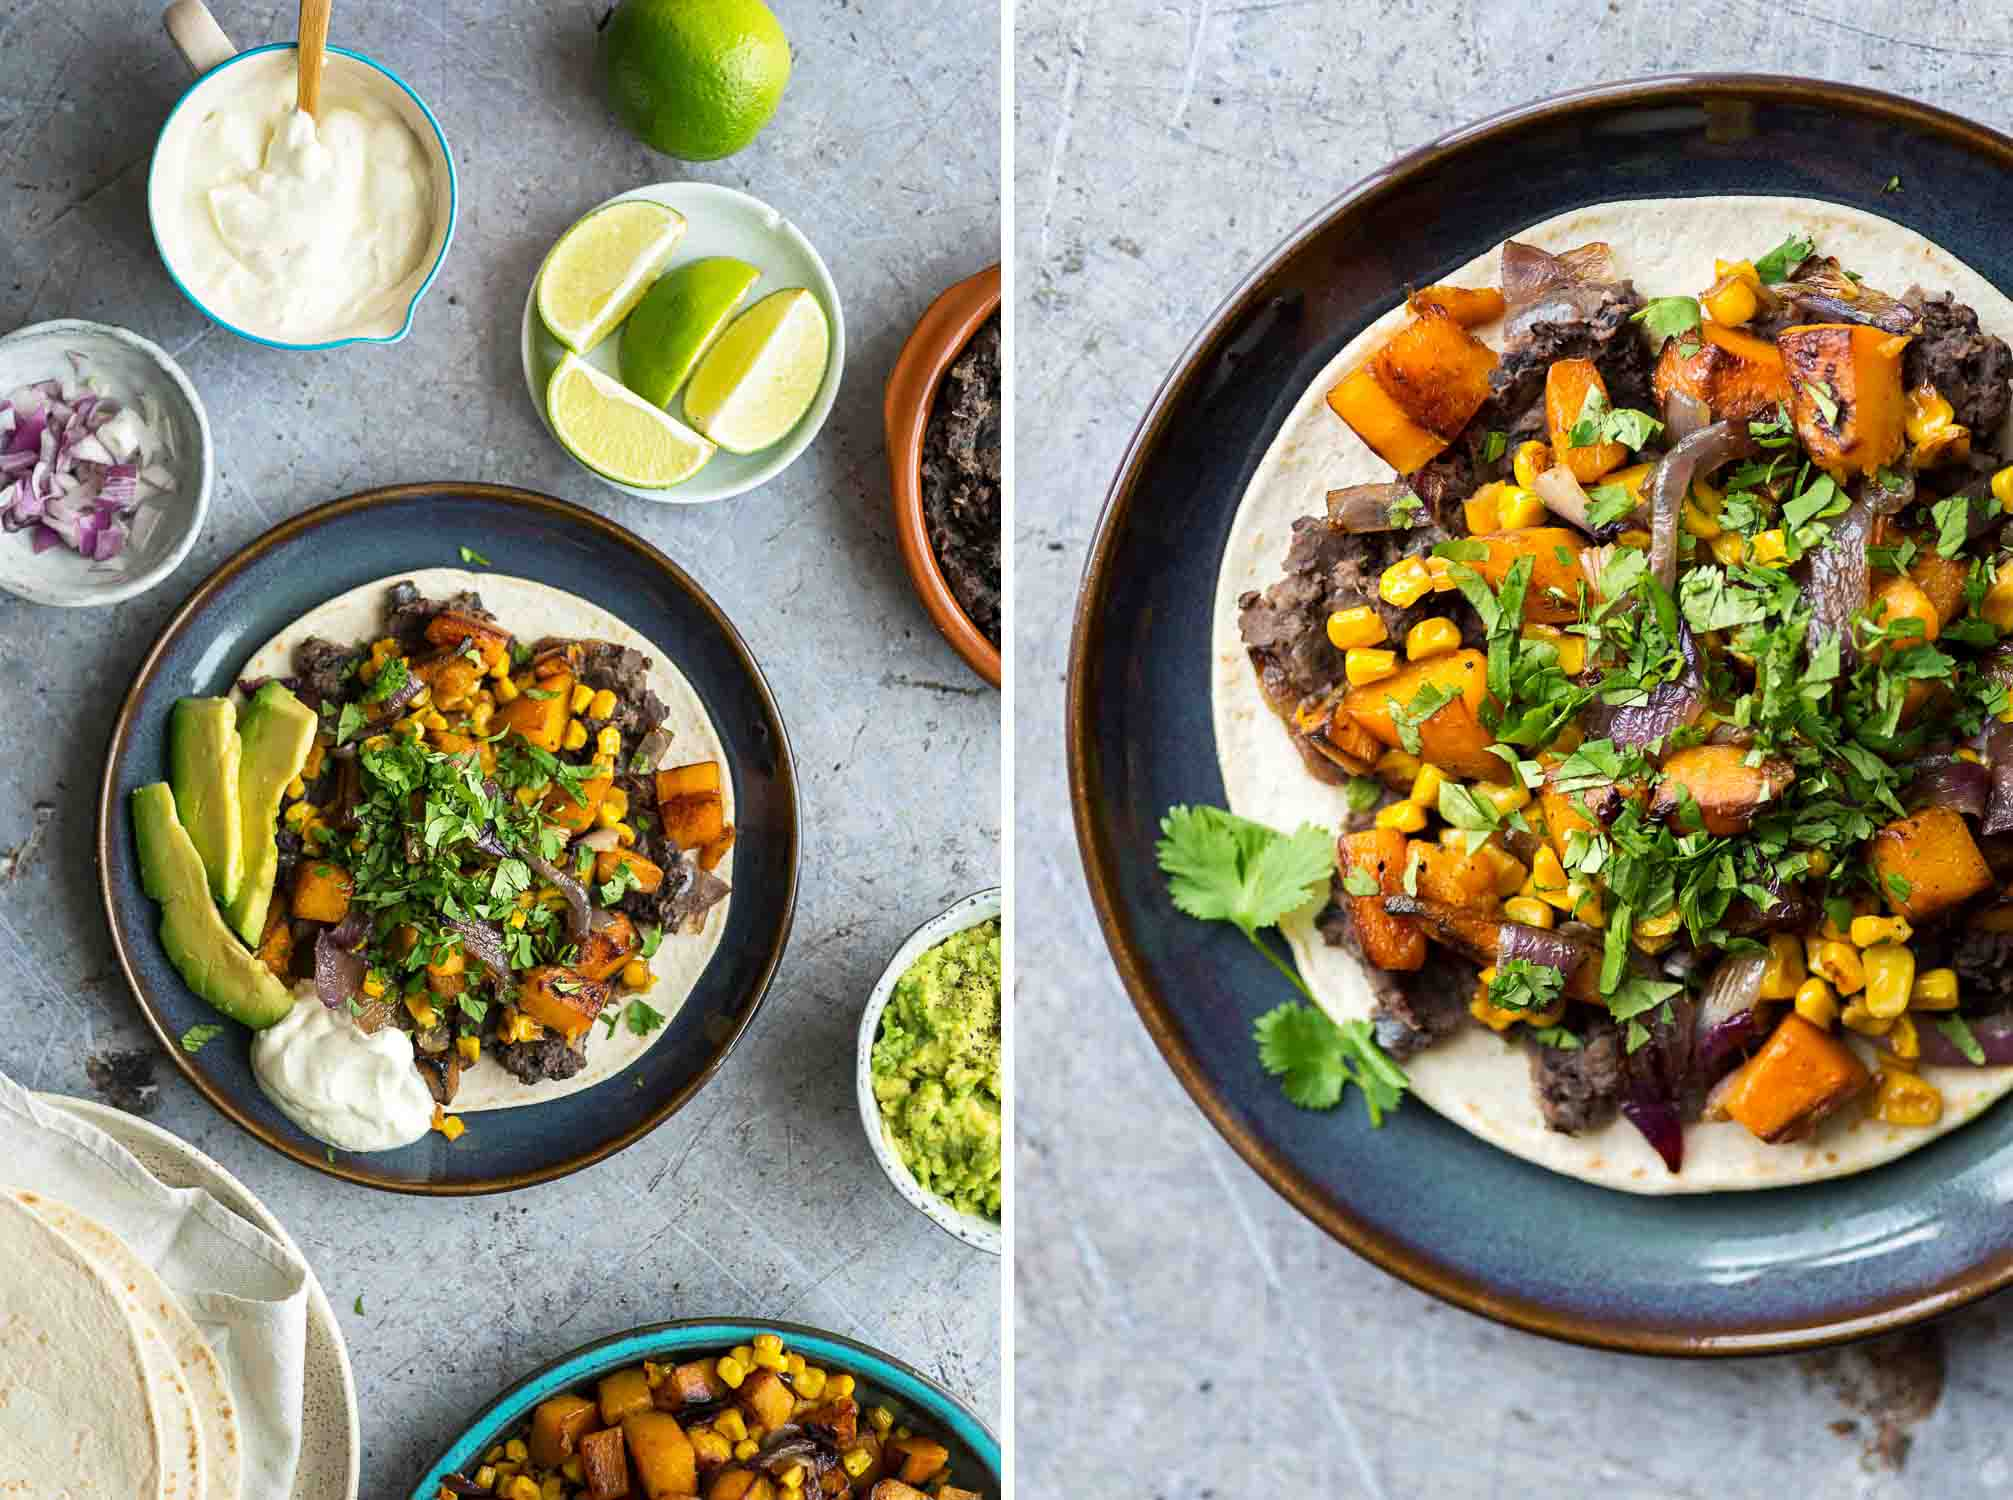 Veggie Tacos with Deli Kitchen Tacotillas, refried black beans, roasted butternut squash and sweetcorn